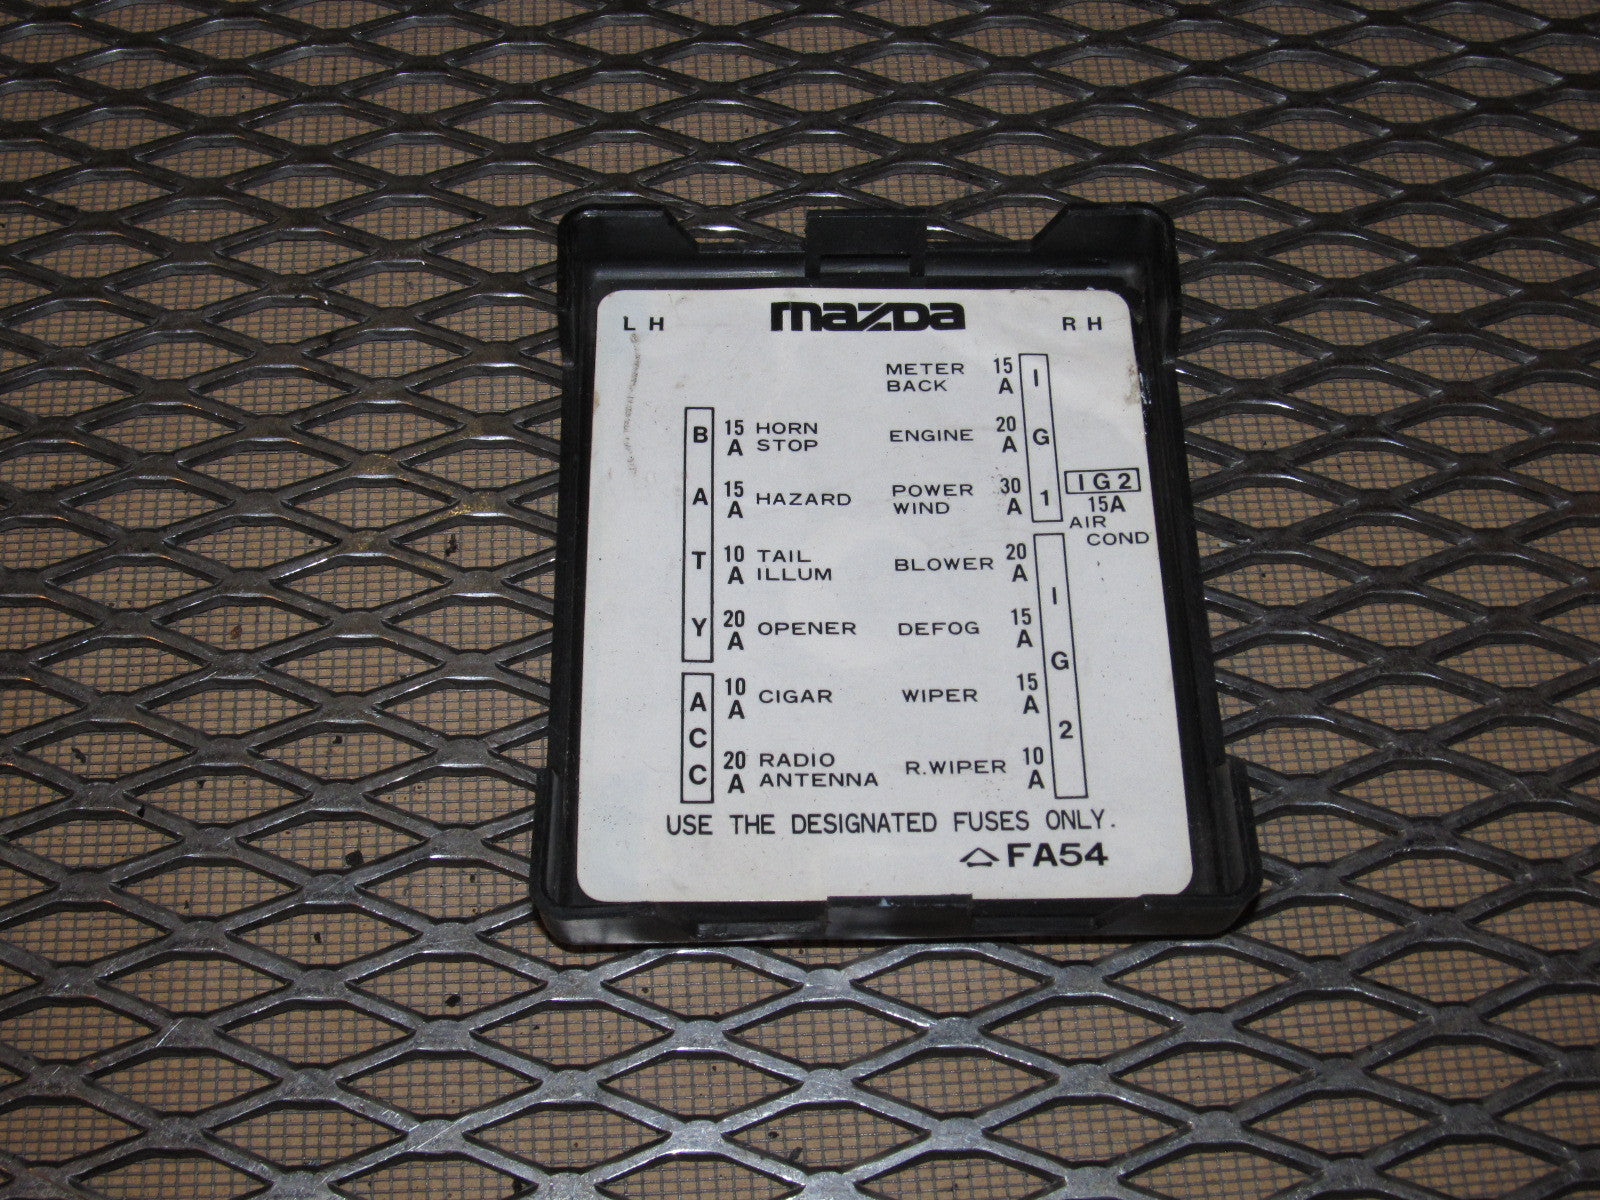 likewise IMG 9933 afe784d4 8ce0 4e49 a67f b29f72d37539 moreover yamaha moto 4 80 wiring diagram yamaha moto 4 wiring diagram as well  furthermore 12v diagram01 besides  besides  moreover  also Fuse 20 28Interior 29 20  20Check 20  20Remove 20and 20Replace likewise  together with img 4288. on e fan fuse wiring diagrams jeep l engine diagram trusted bmw 4 v8